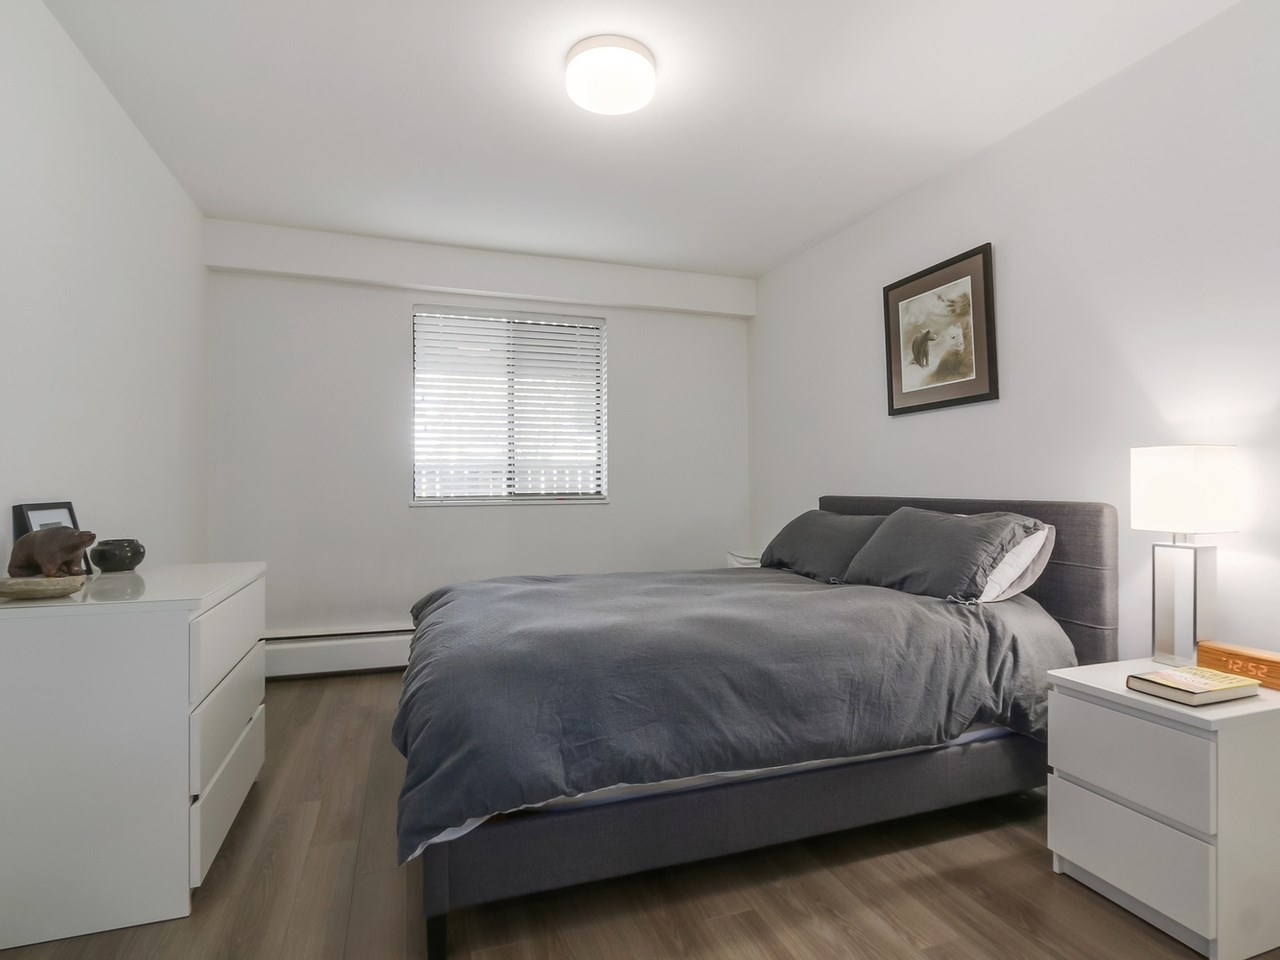 Photo 14: 102 2424 CYPRESS STREET in Vancouver: Kitsilano Condo for sale (Vancouver West)  : MLS(r) # R2059617